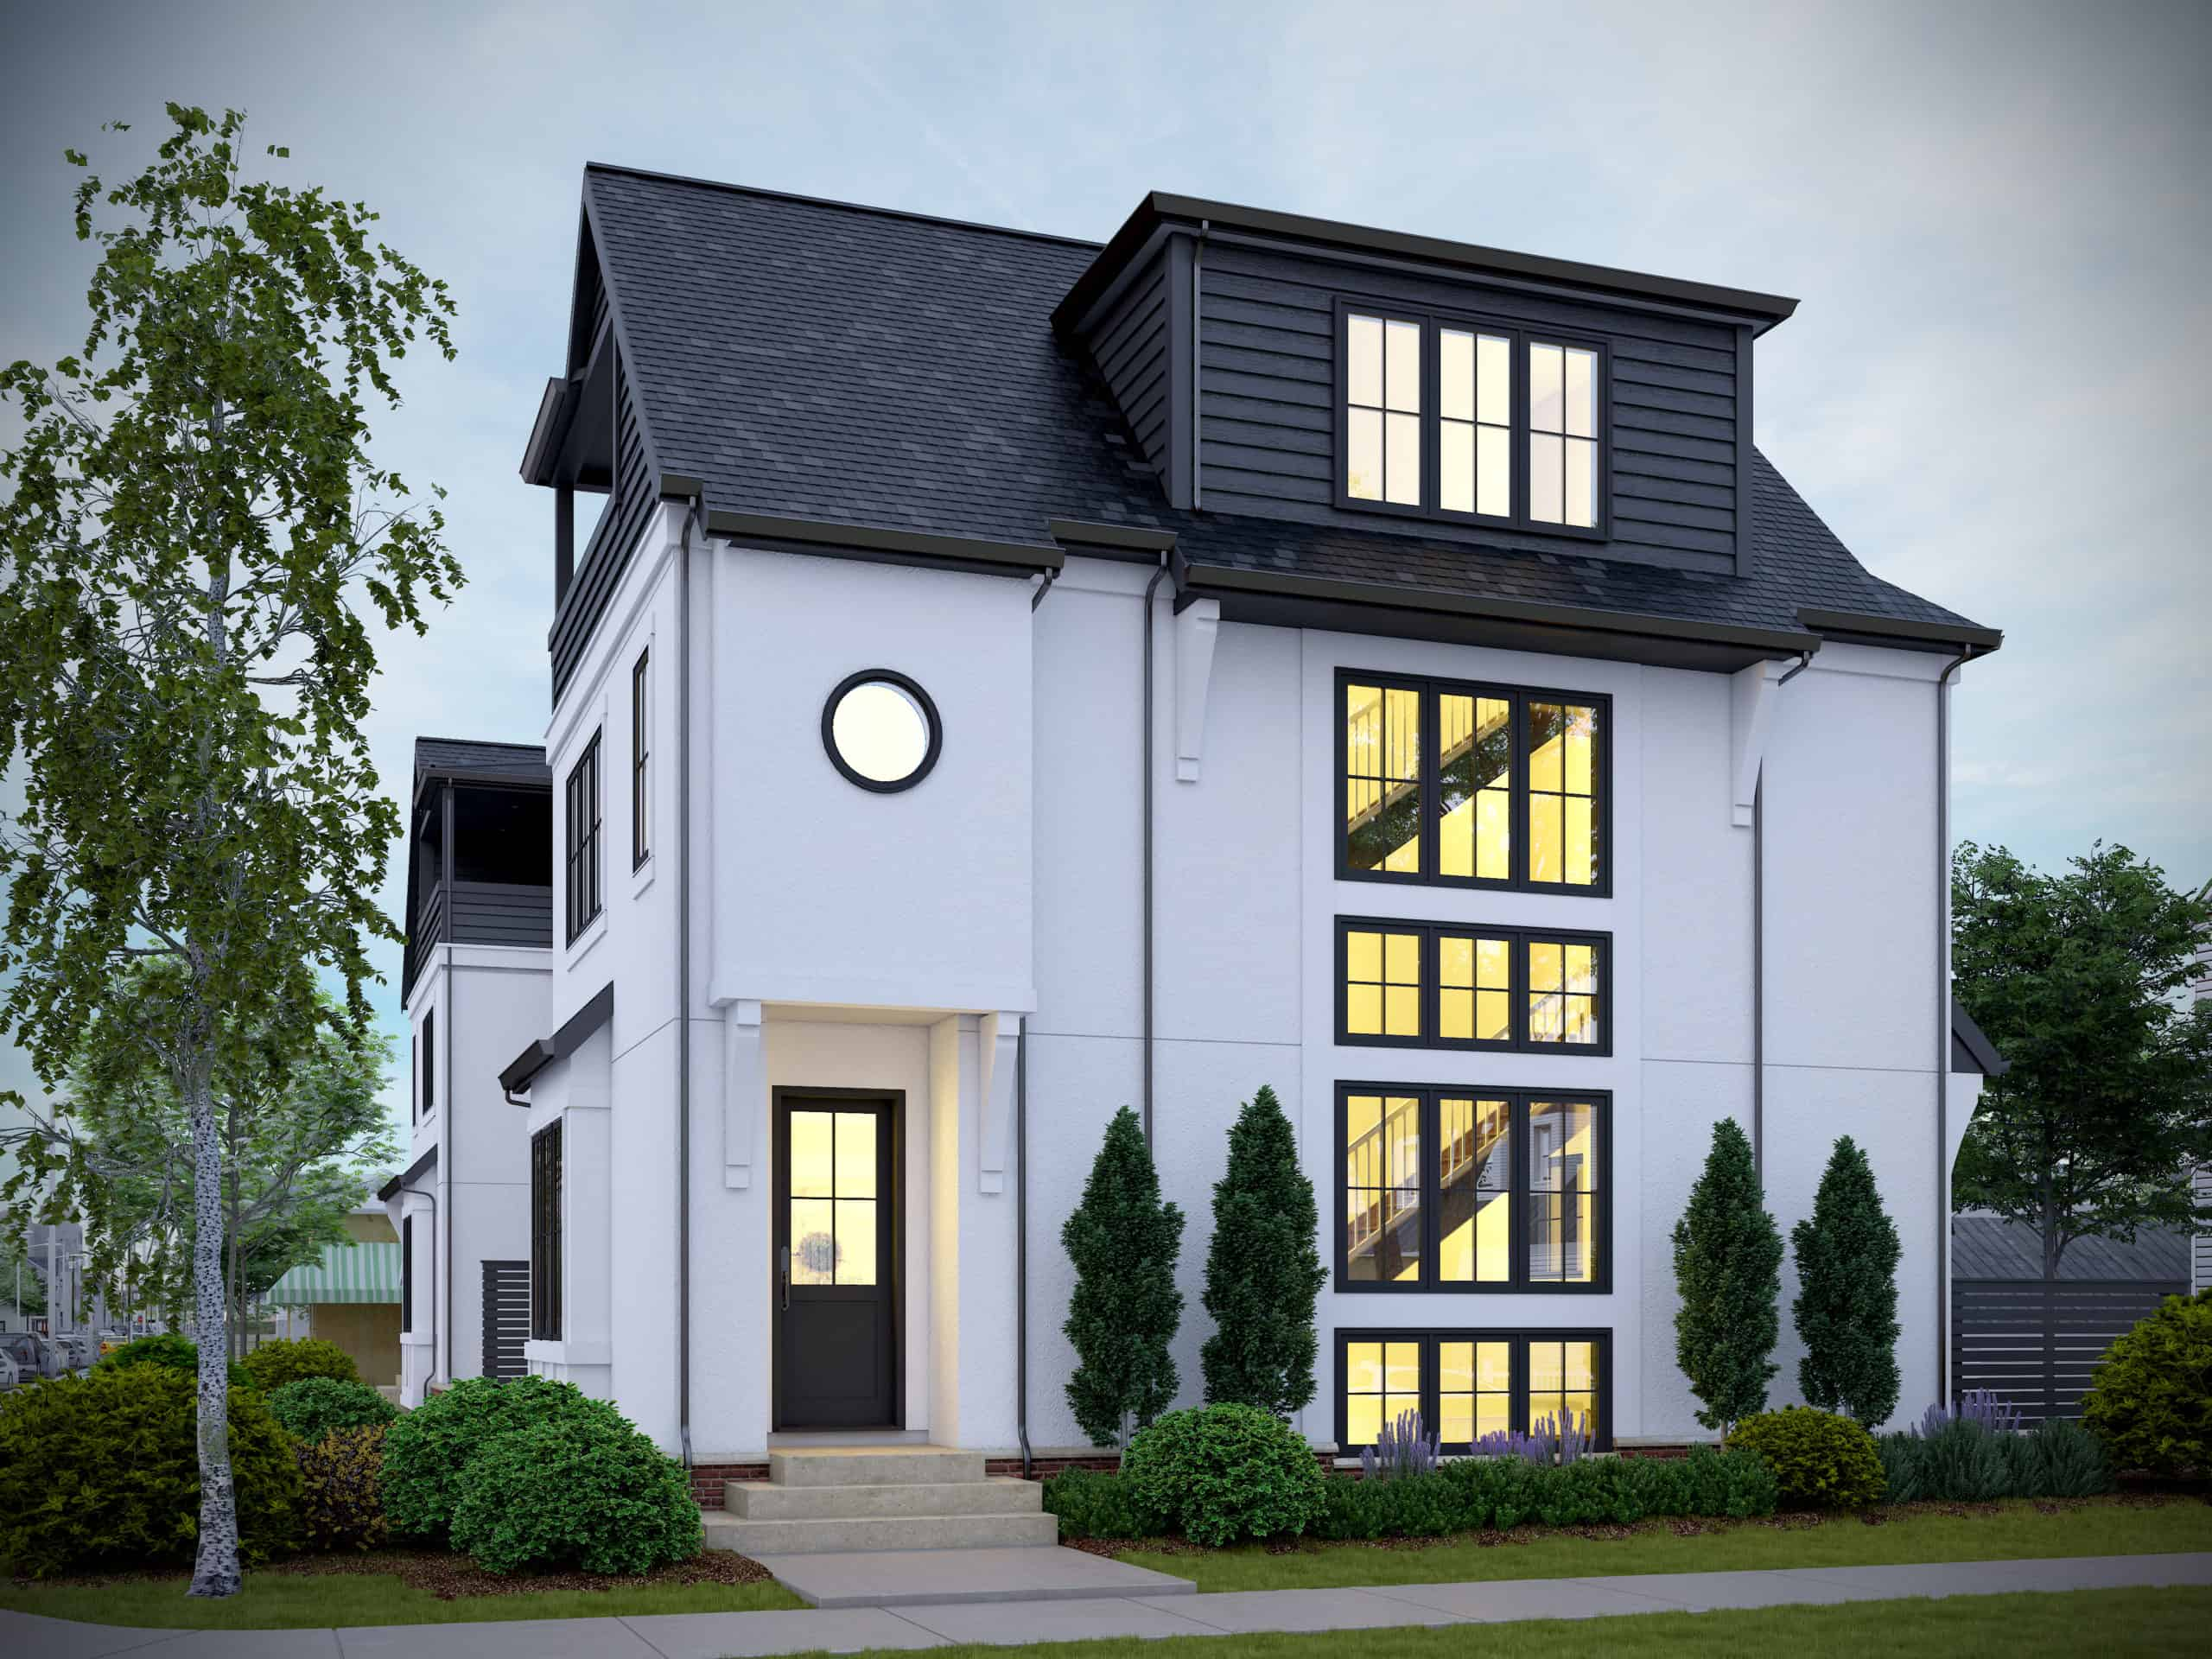 West Hillhurst Rowhouse rendering custom home